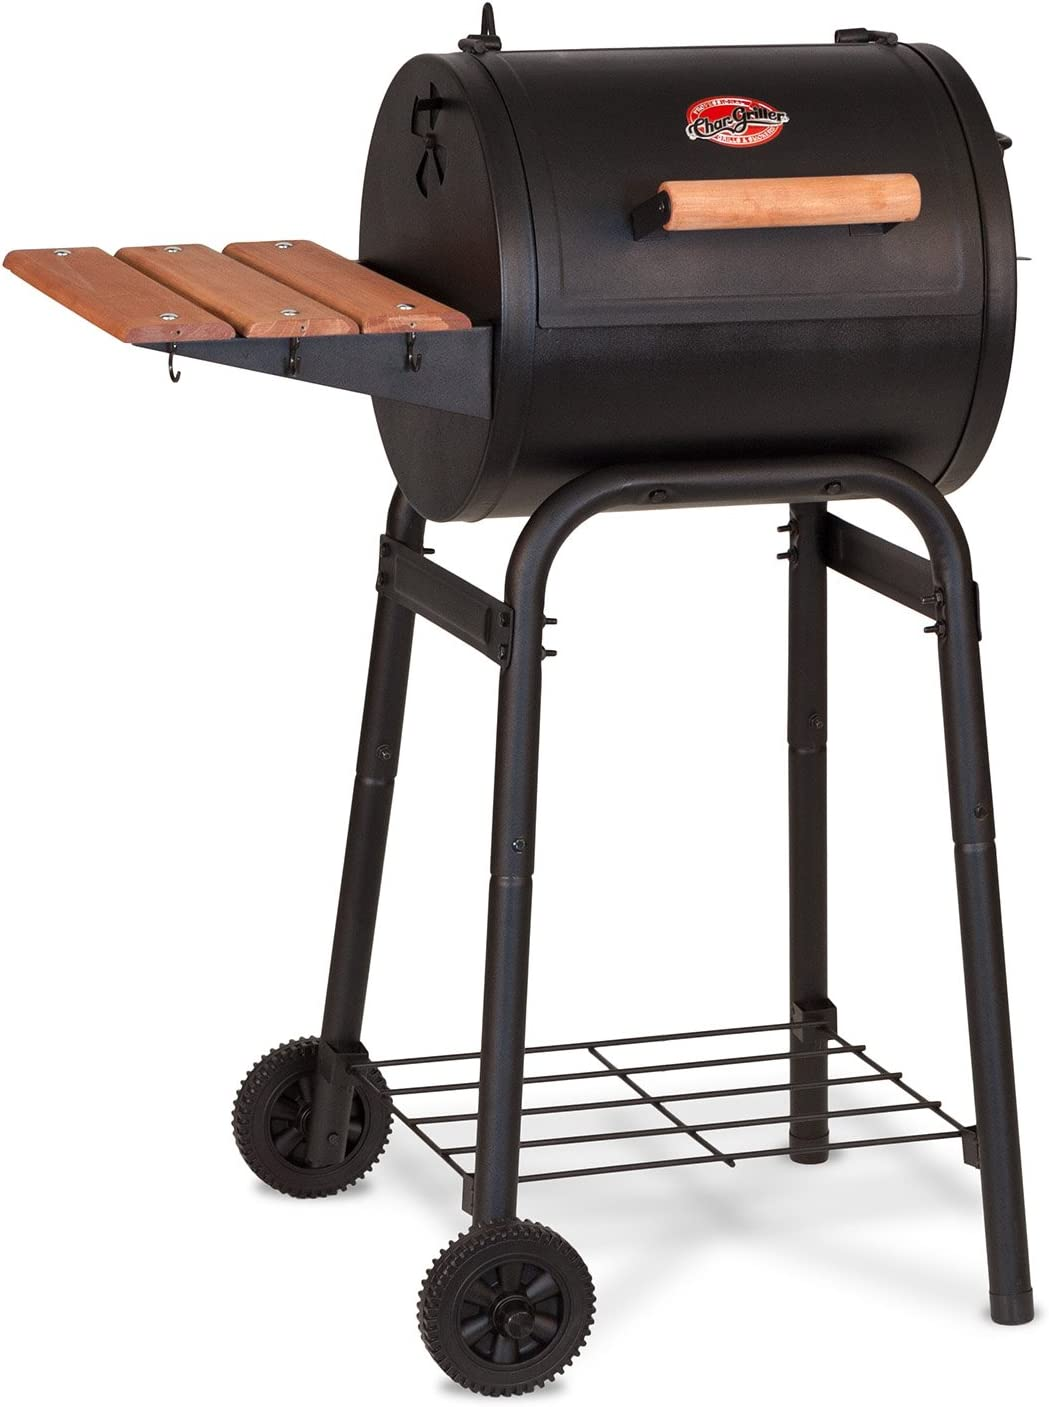 Best Limited Space Grill: Char-Griller E1515 Patio Pro Charcoal Grill